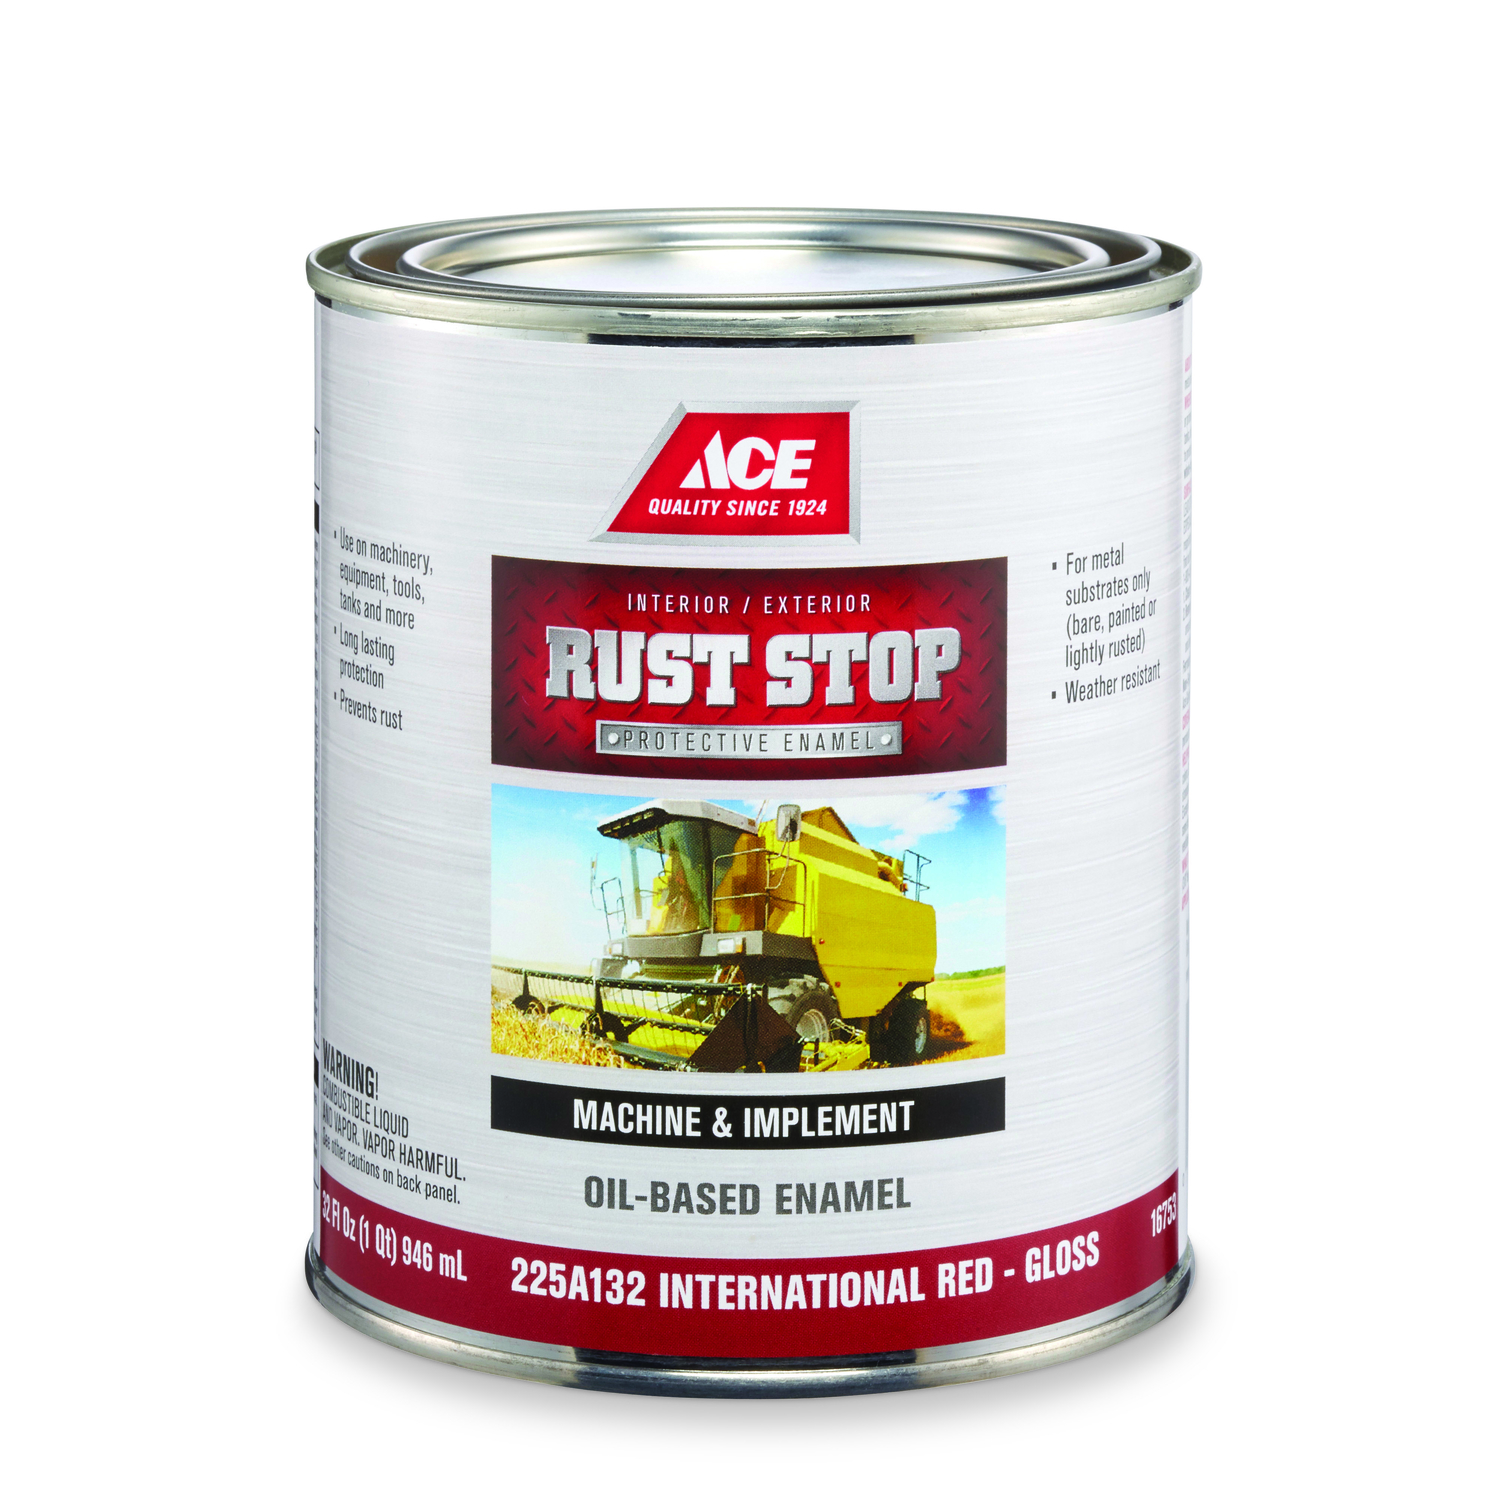 Ace  Rust Stop  Indoor and Outdoor  Gloss  Interior/Exterior  Rust Prevention Paint  1 qt. Internati